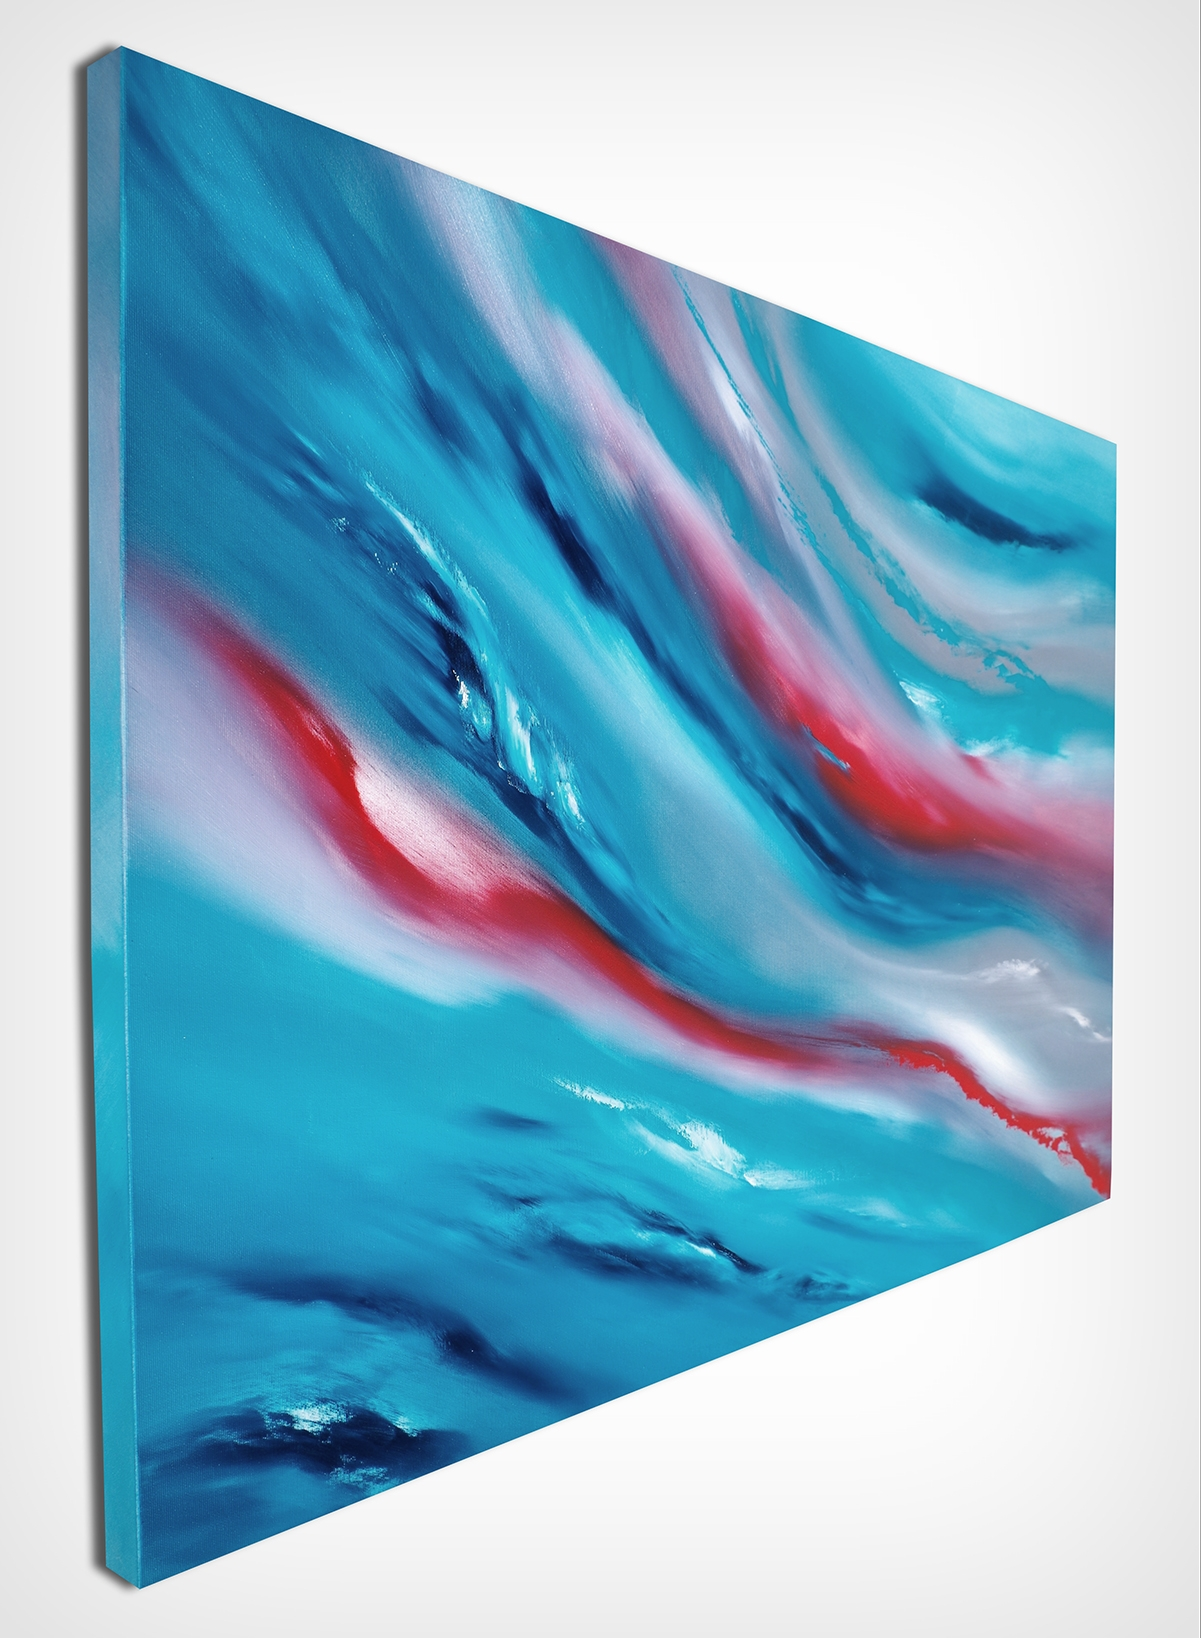 Blue Sky IiI 100x70 quadro dipinto originale astratto in vendita online